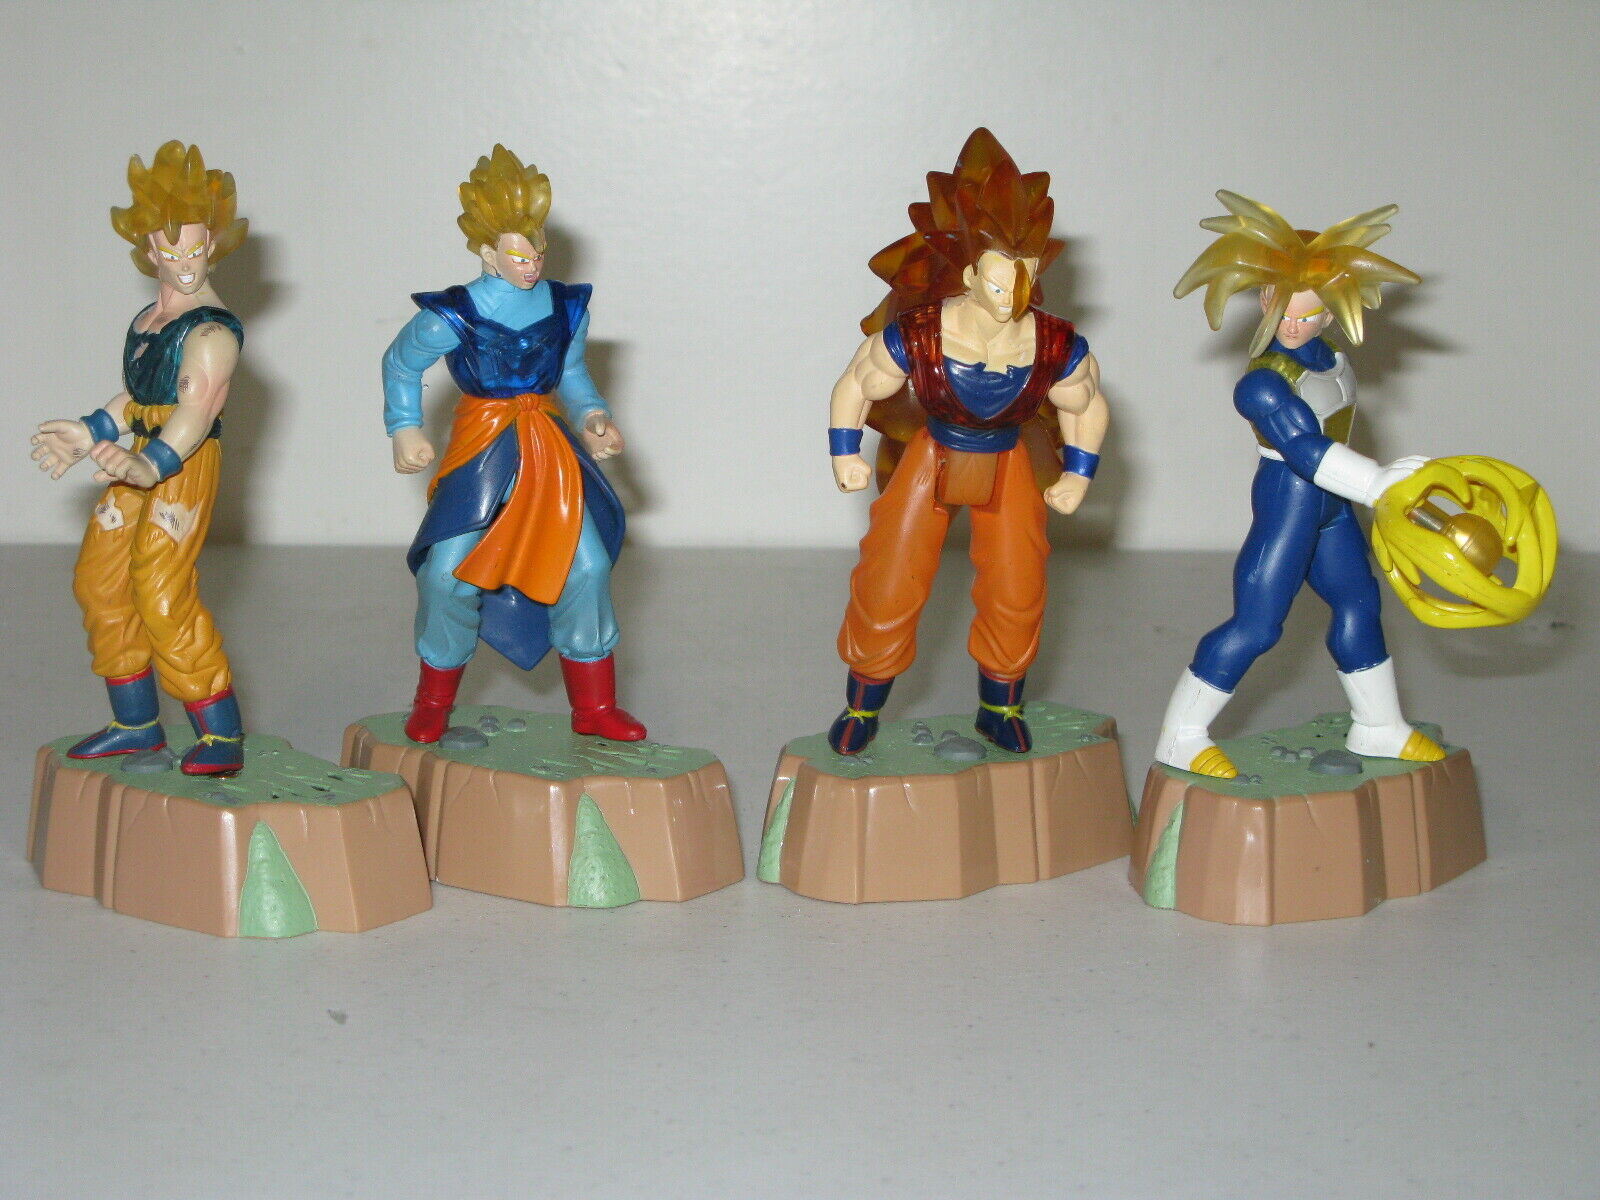 4 Dragon Ball Z Energy Glow Super Sayan Goku Vegeta Trunks Gohan Jakks + Stands